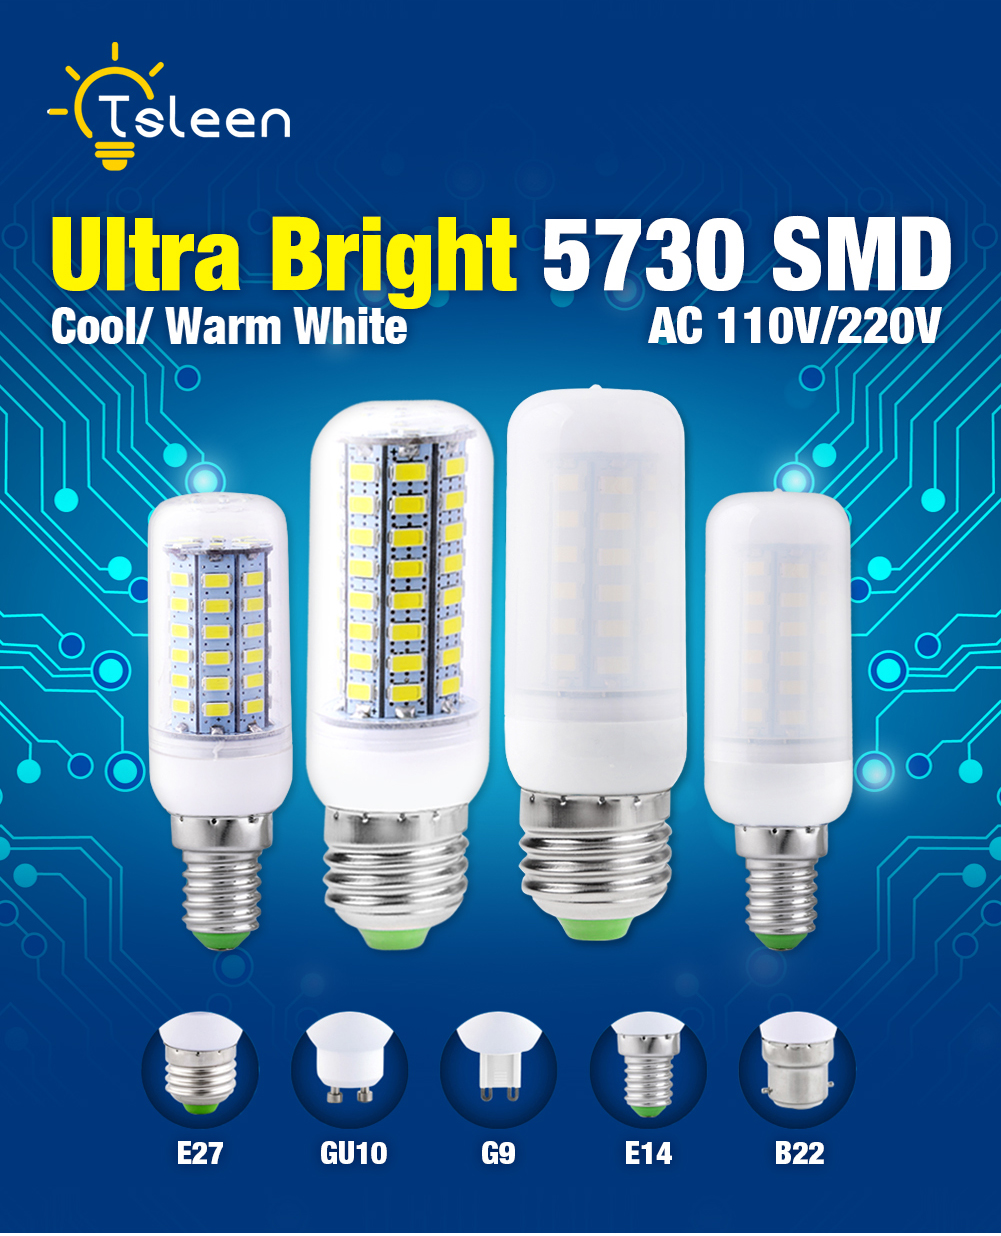 SMD 5730 LED Corn Light AC 220V B22/E14/E27/G9/GU10 Socket 24/36/48/56/69/72 LEDs 7/9/12/15/20/25W Cool/Warm White For Bedroom